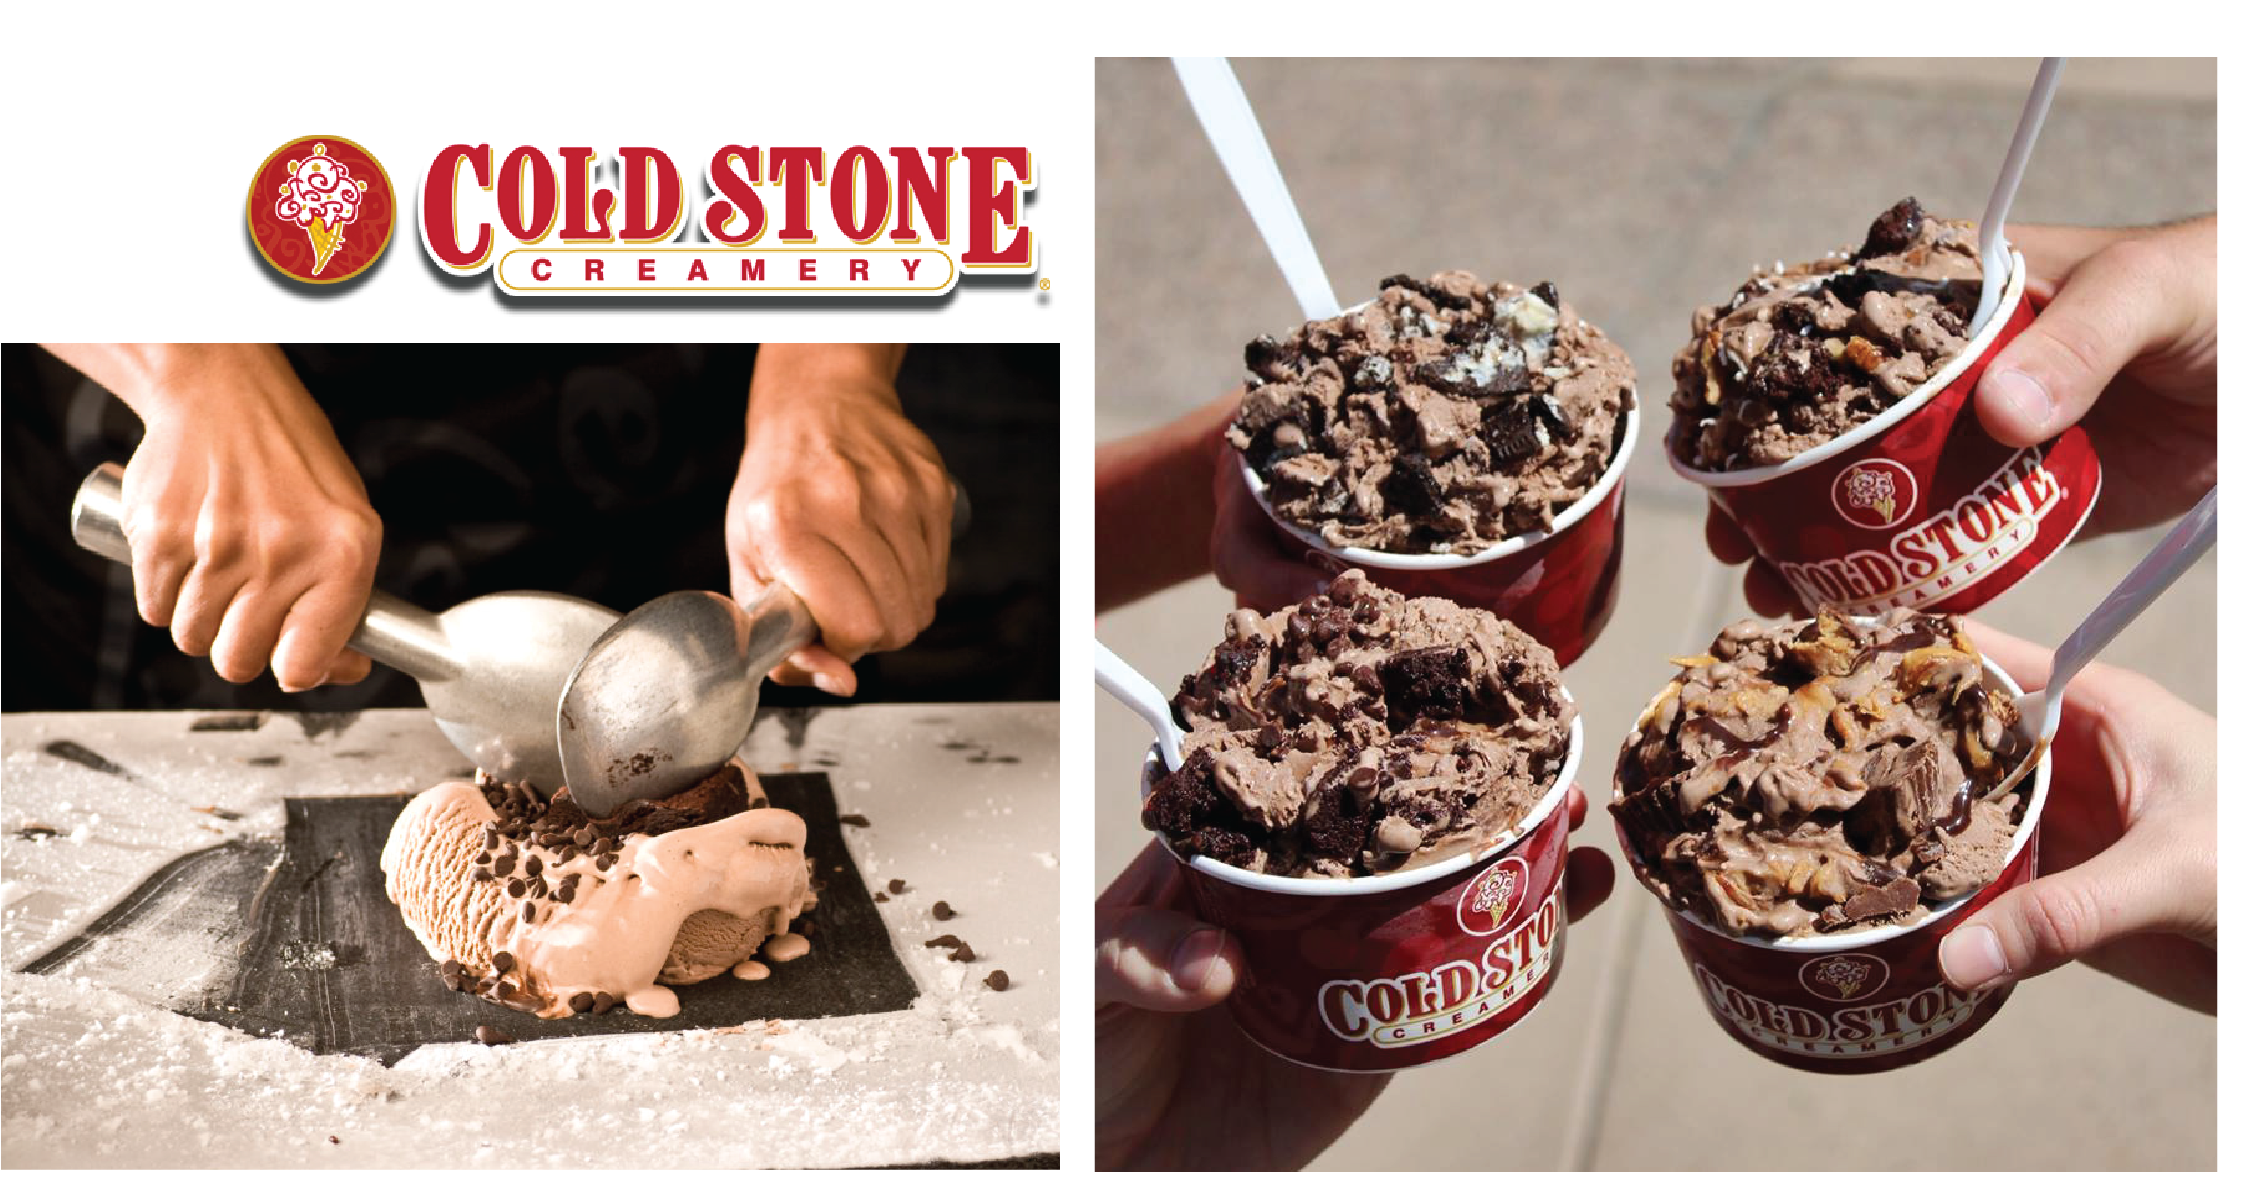 Coldstone top image client page 2020 v3